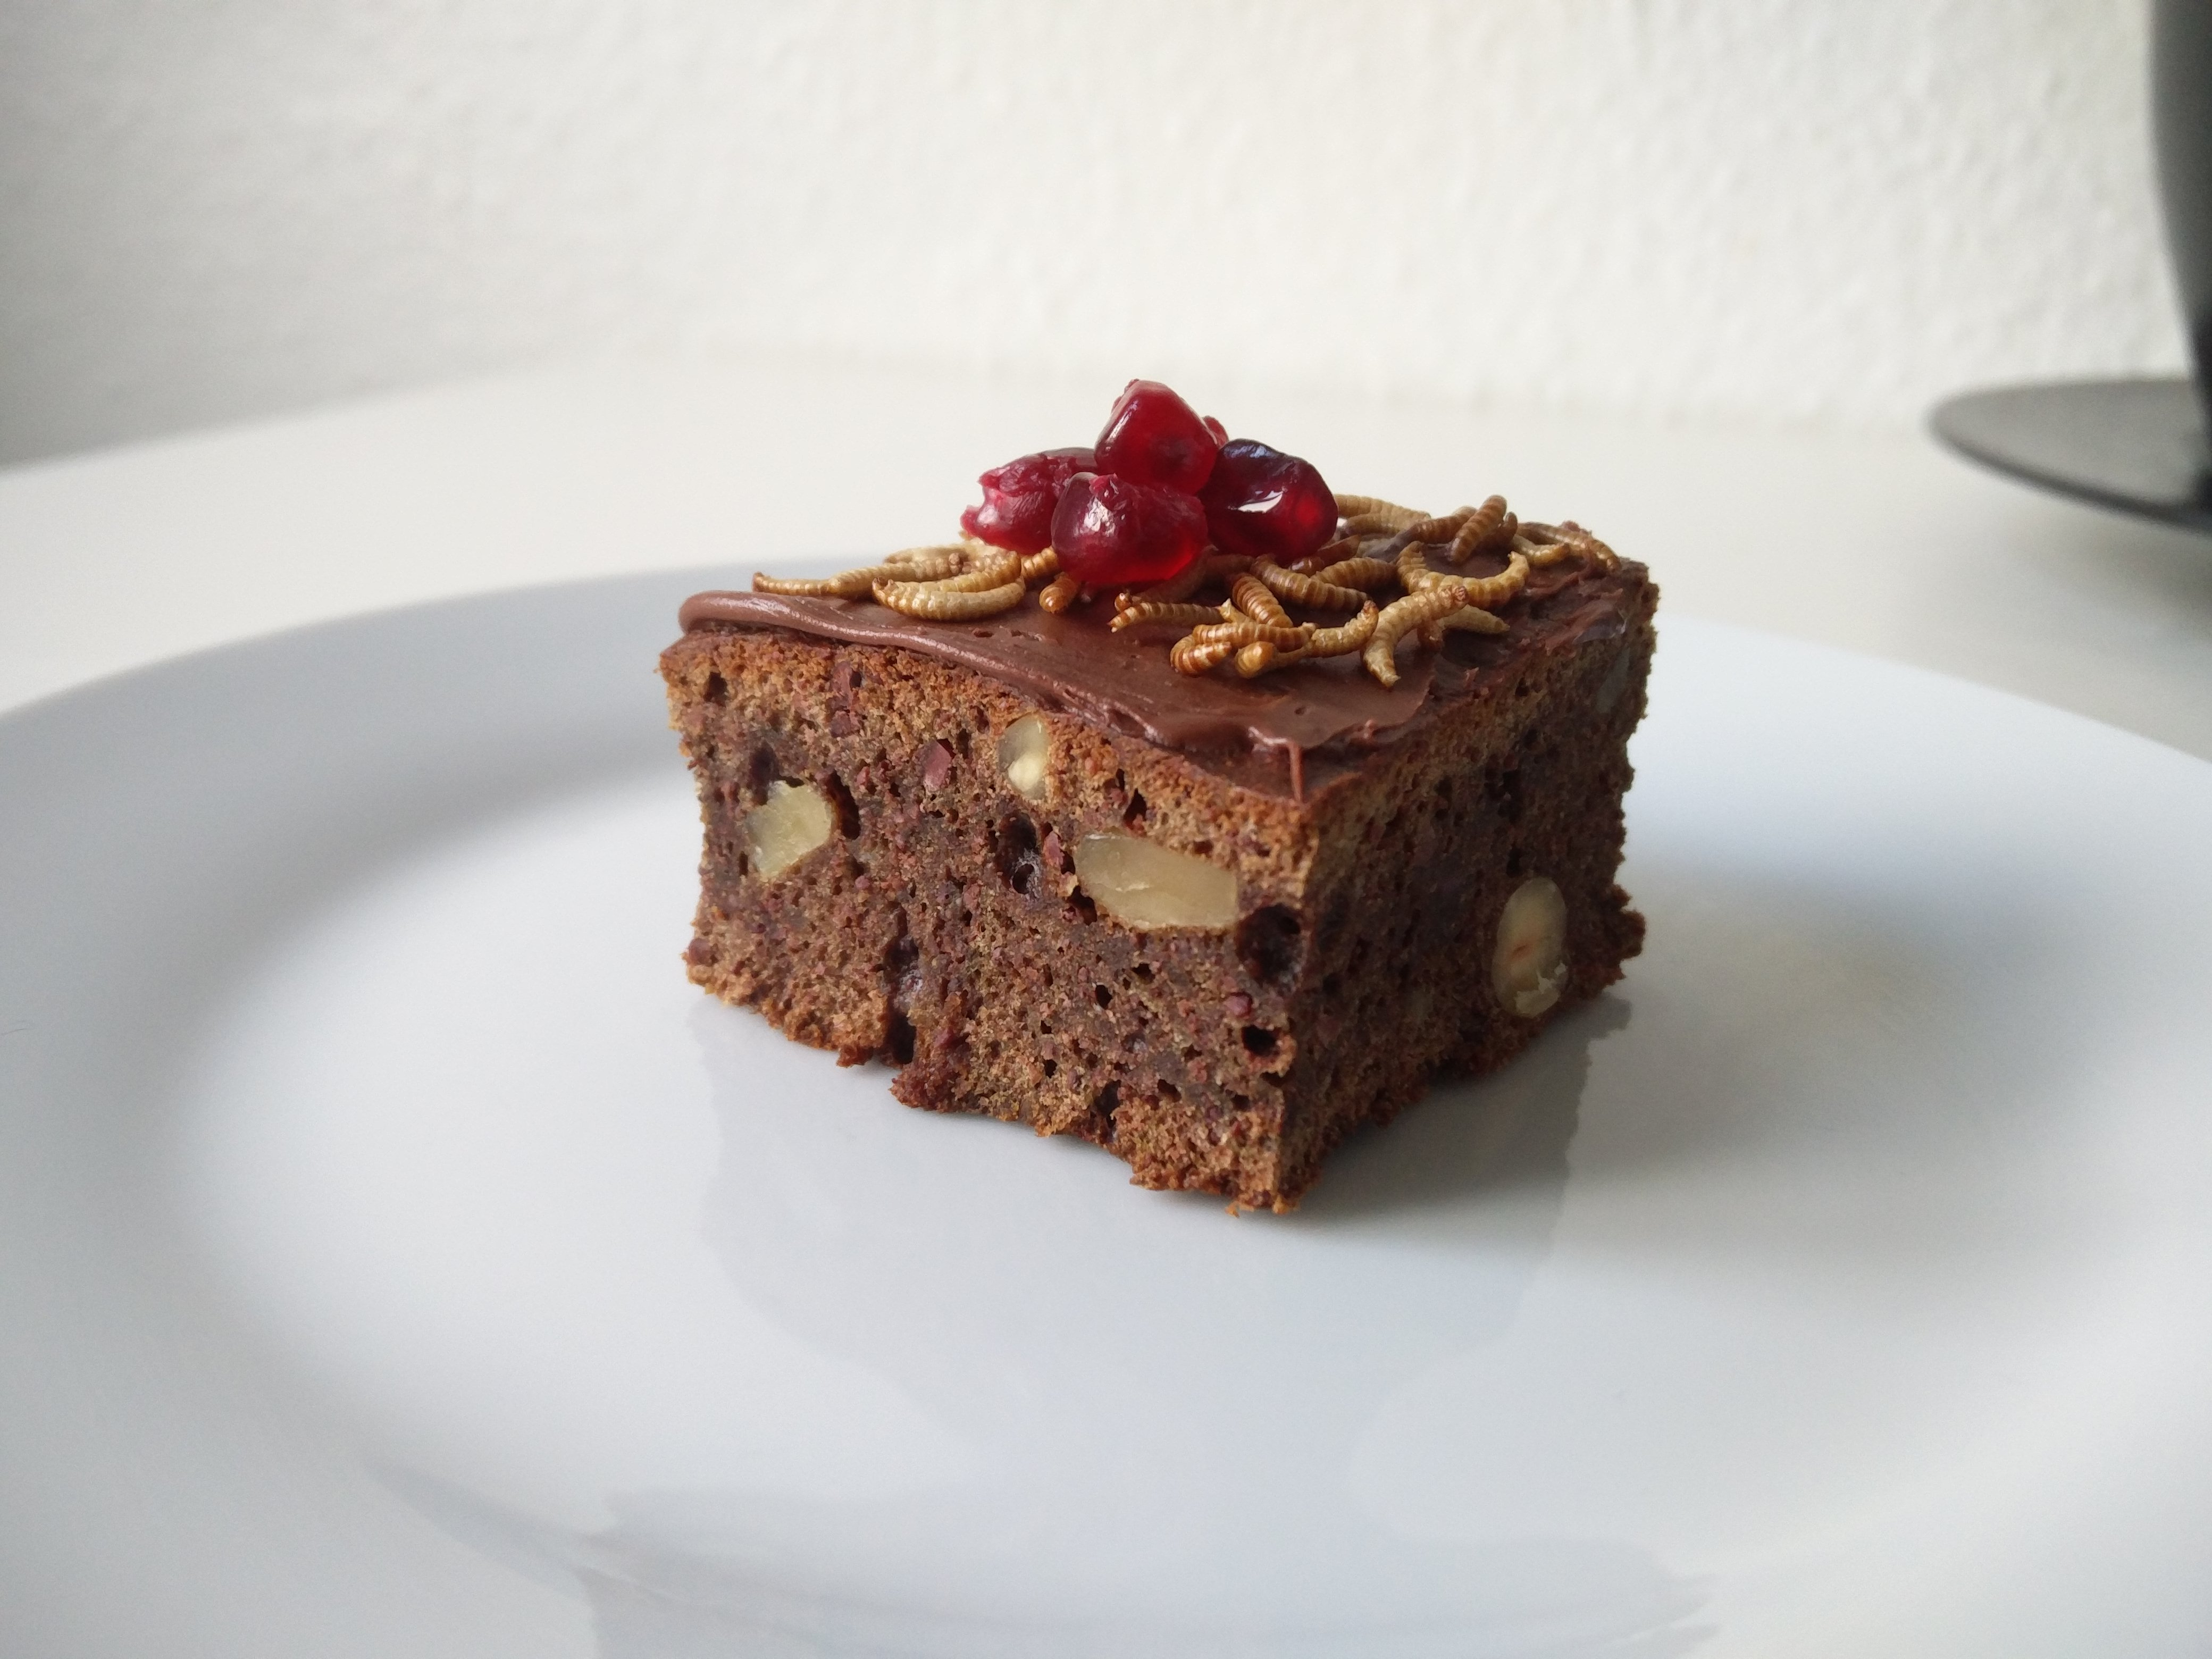 Cake topped with Freeze dried insects